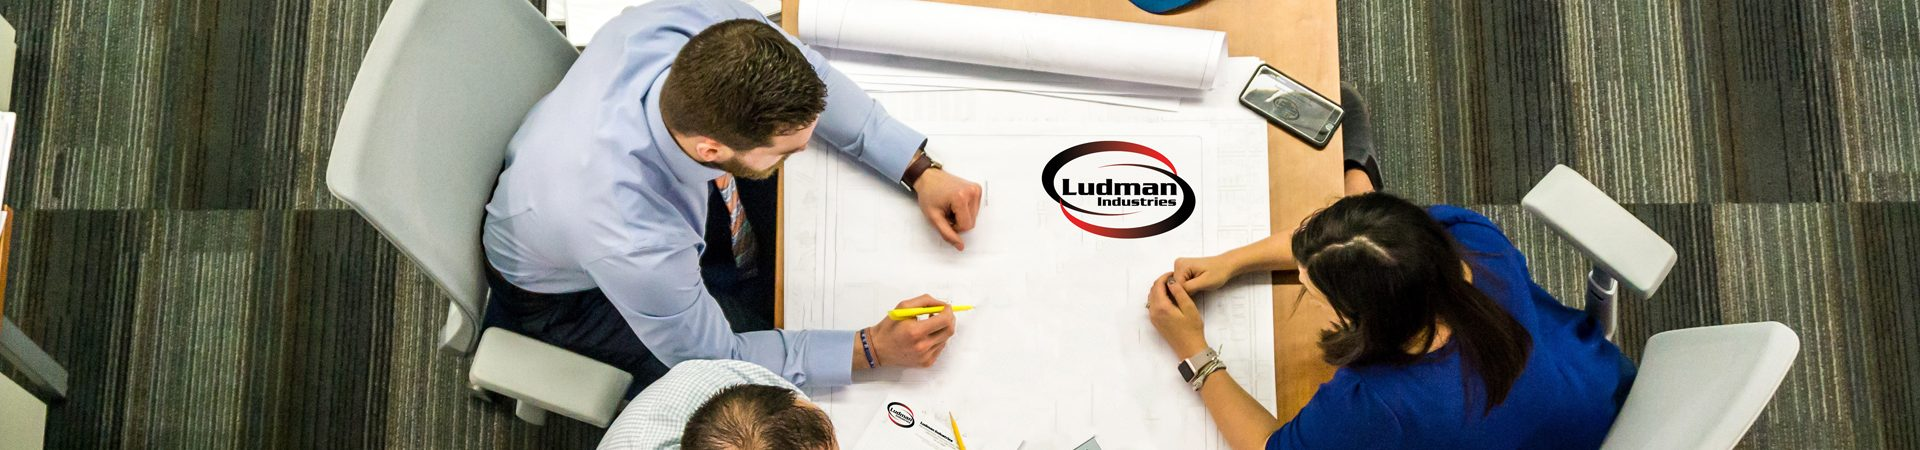 Ludman Engineering and Process Development